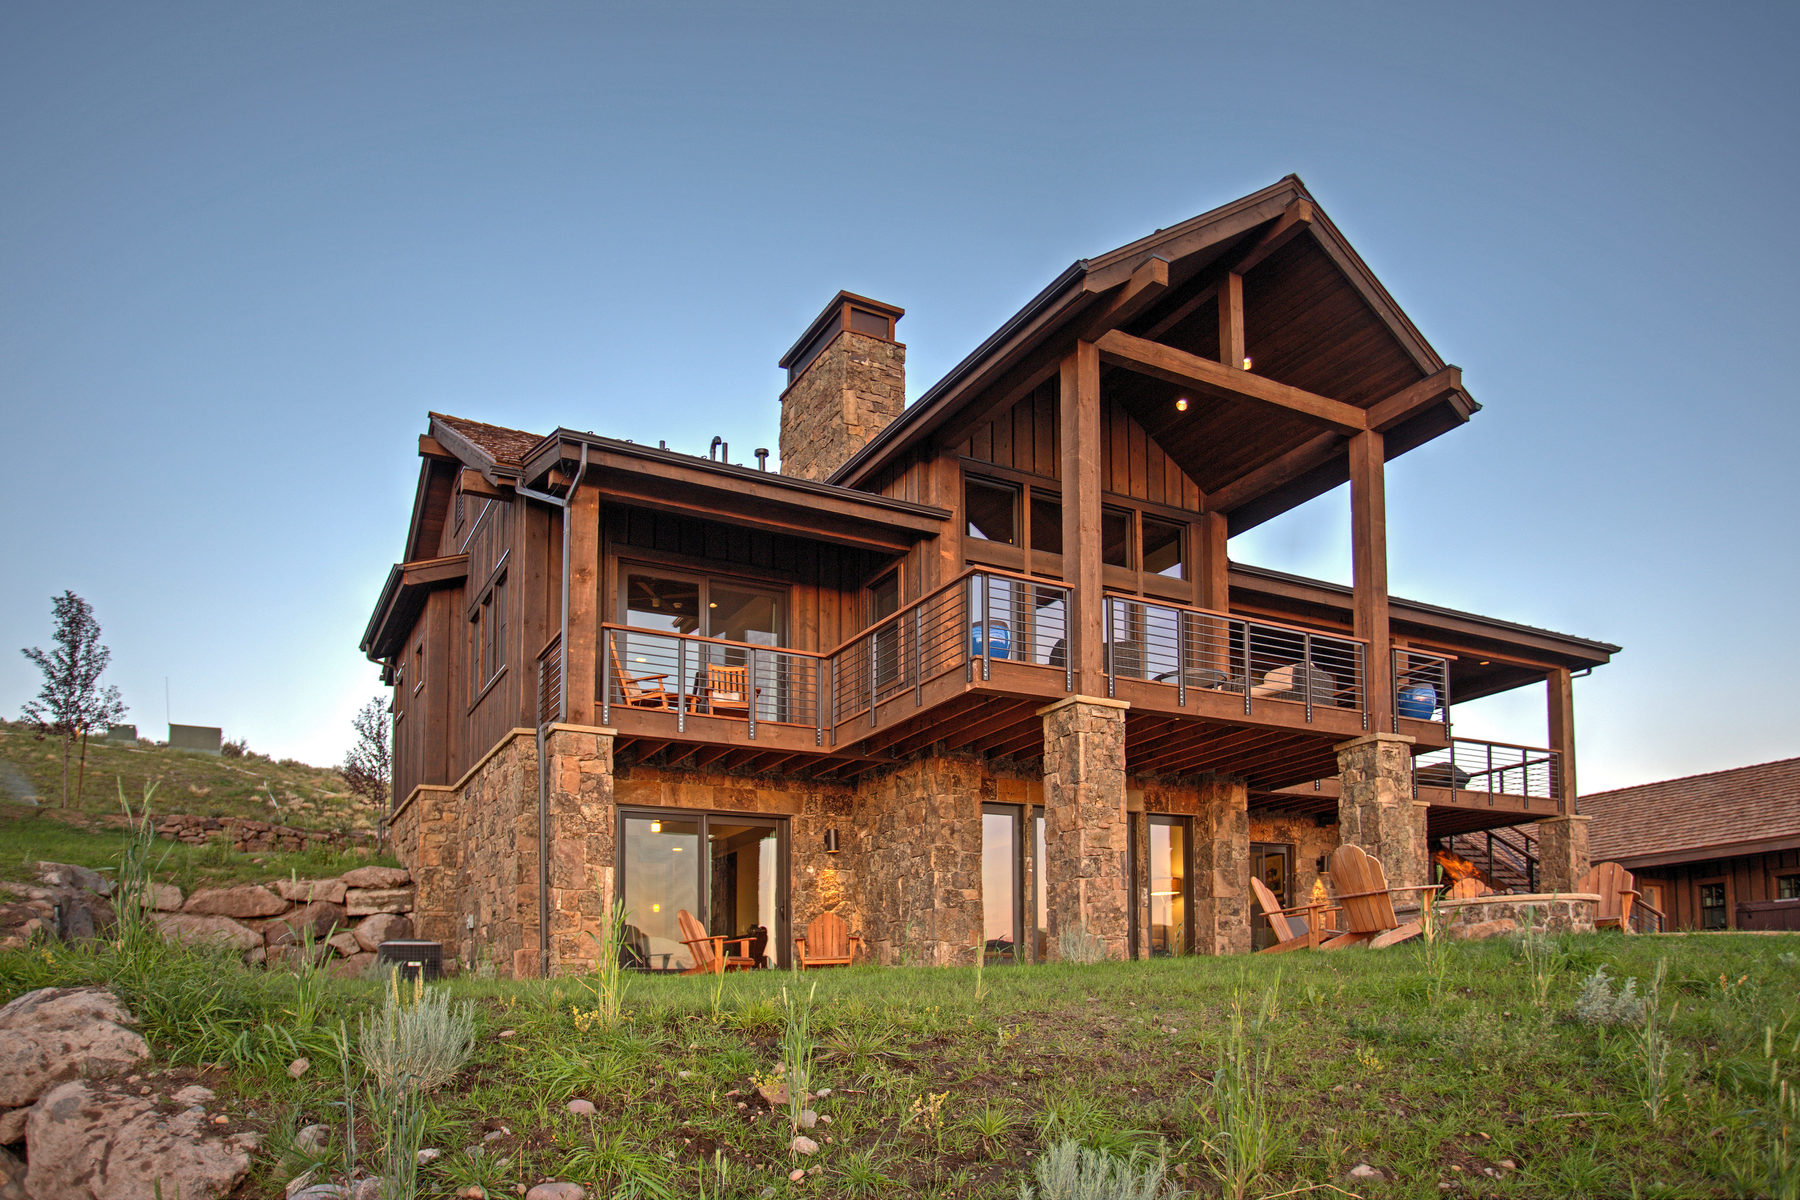 Casa Unifamiliar por un Venta en Juniper Cabin with Spectacular Views 7037 N Rees Jones Way #170 Heber City, Utah, 84032 Estados Unidos